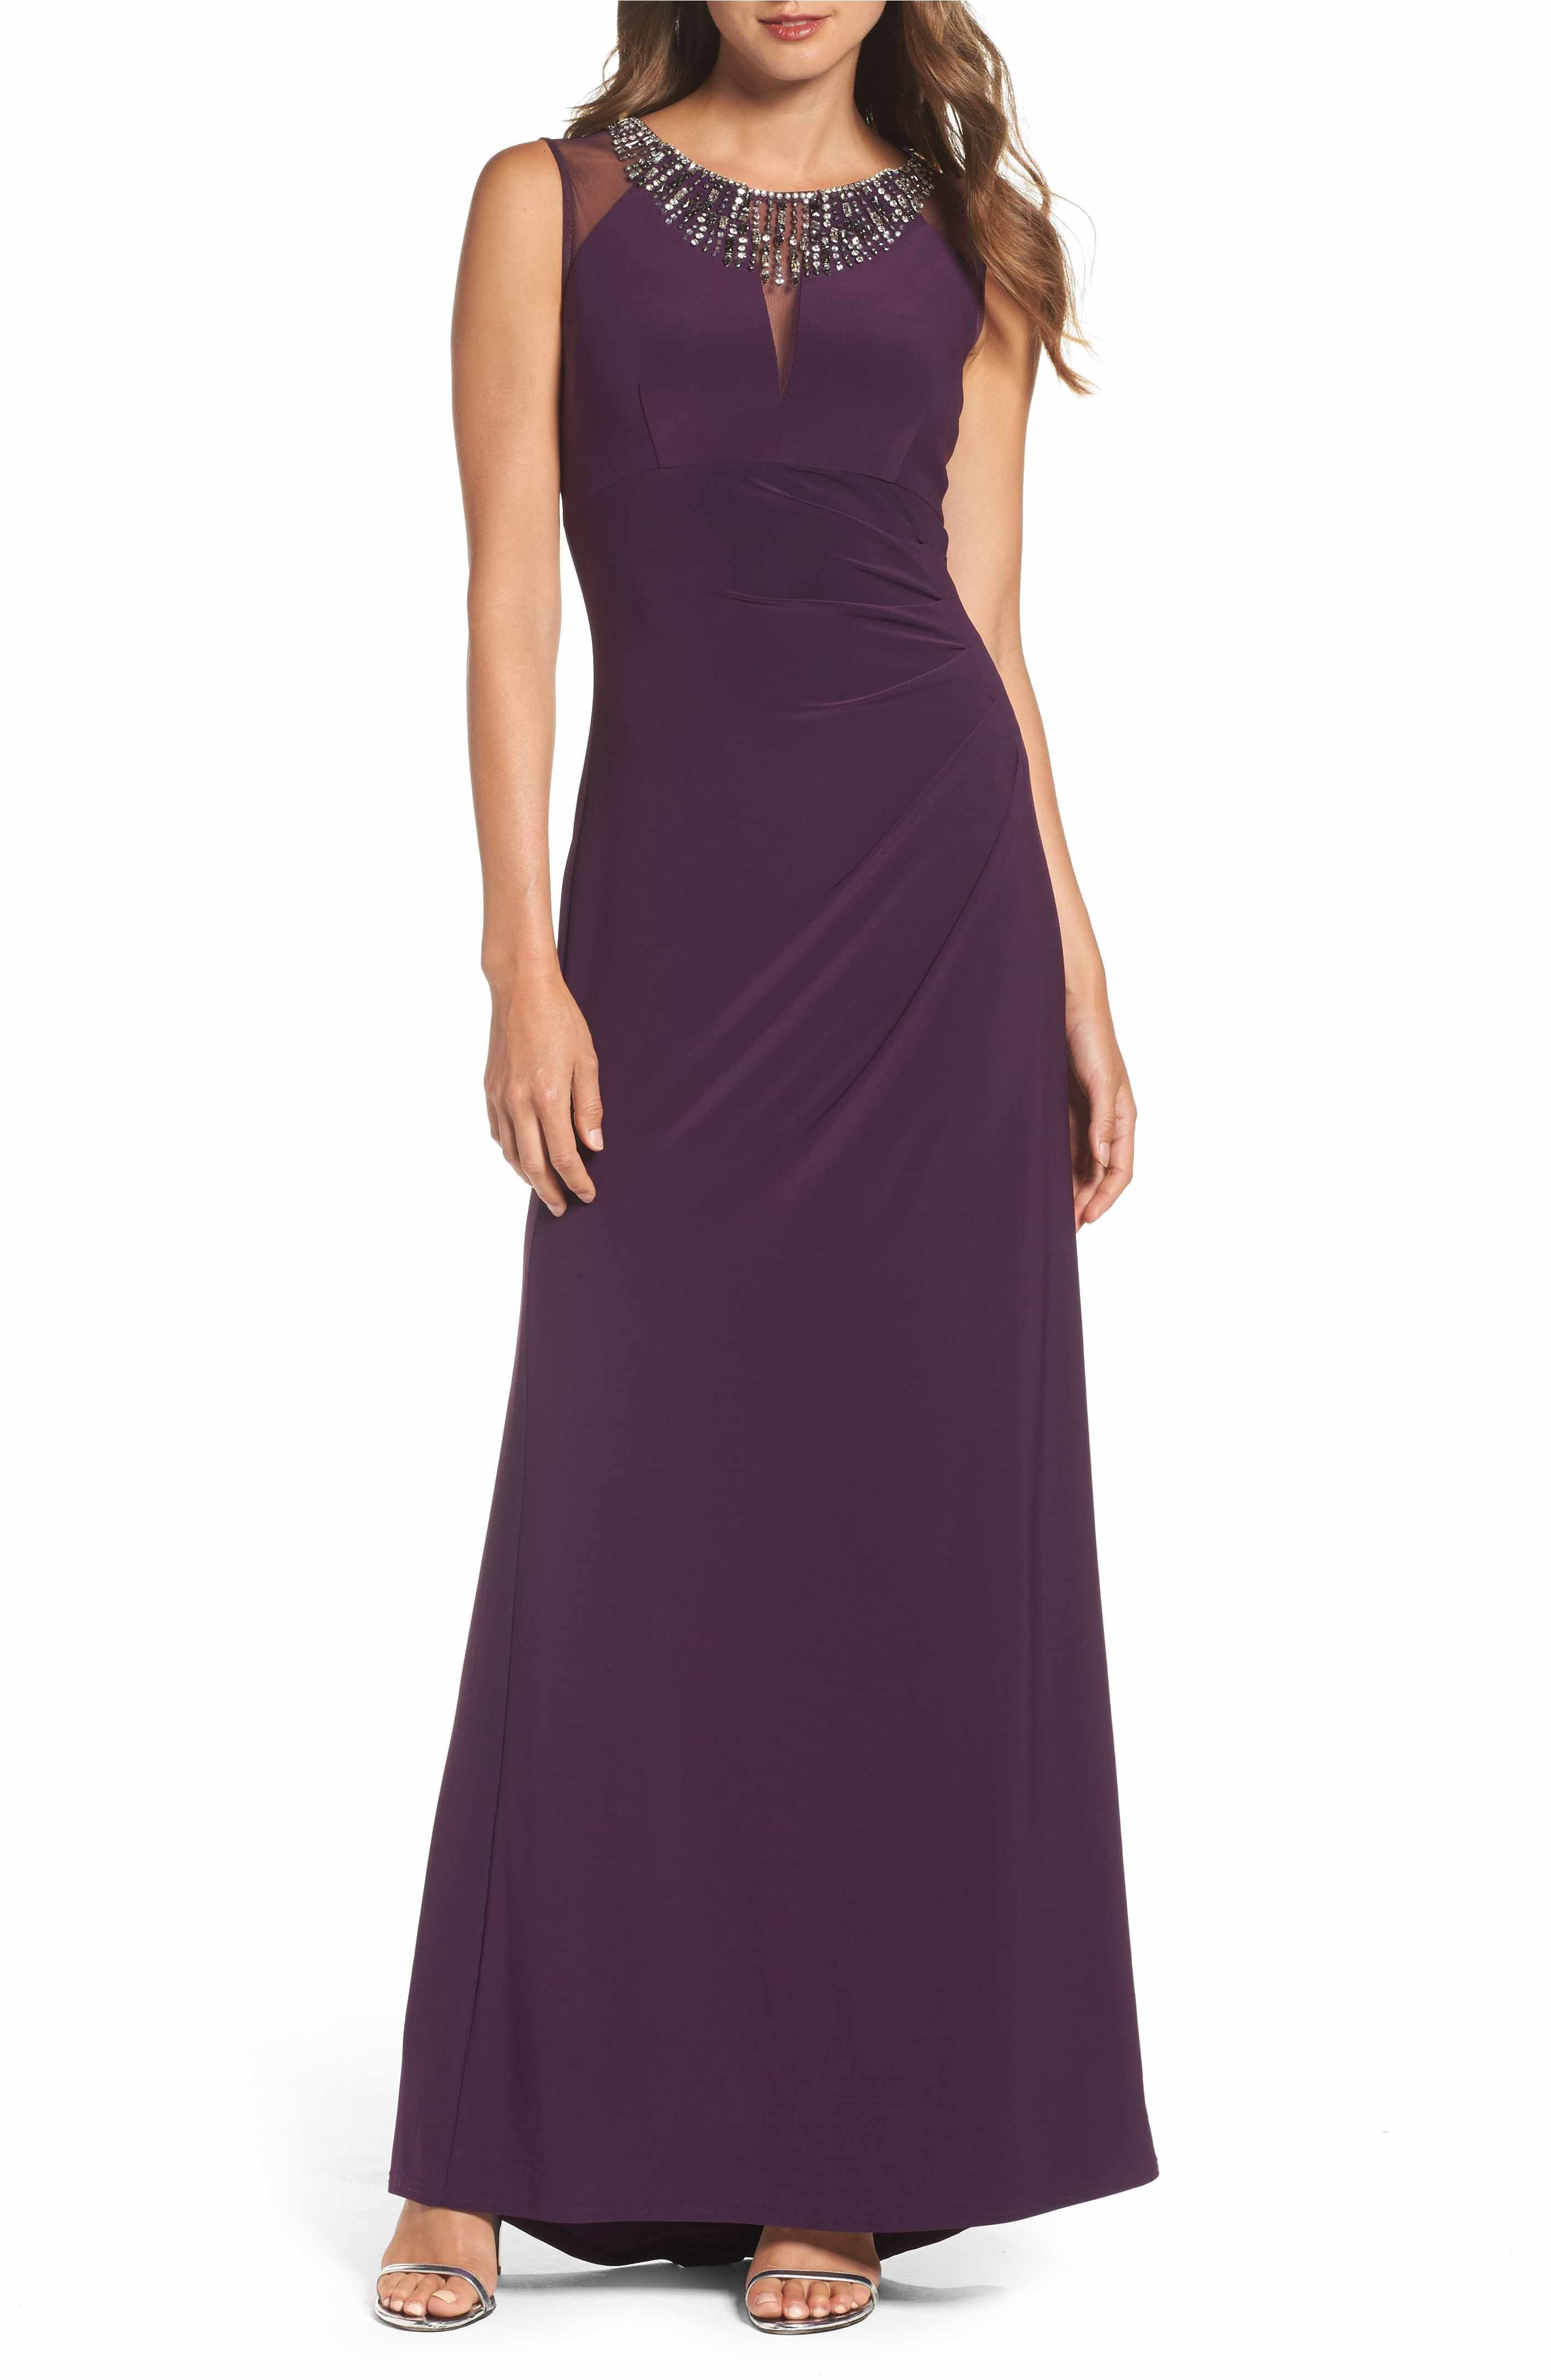 ON SALE! Embellished Gown by VINCE CAMUTO. $124.80 (40% off). Face ...